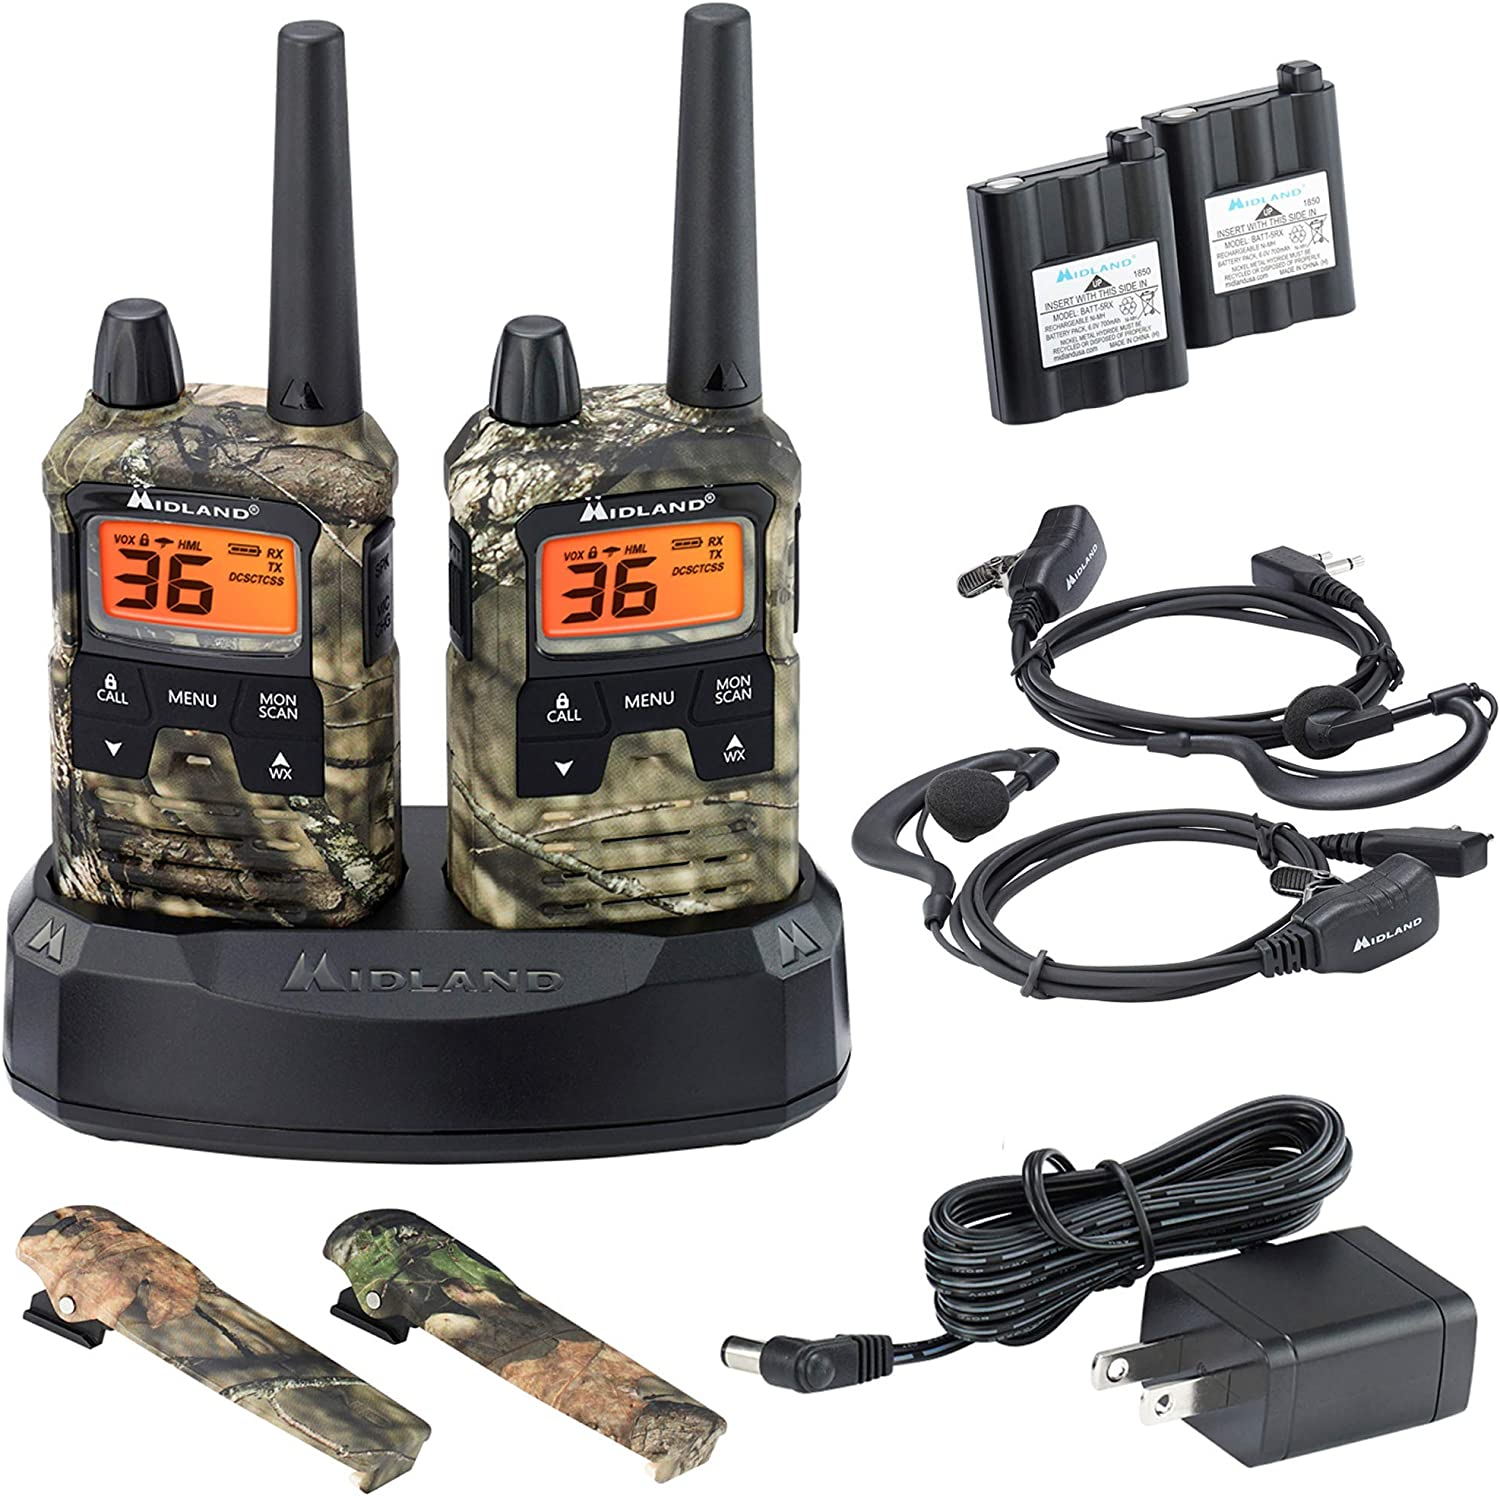 Midland X-TALKER 36 Channel GMRS Two-Way Radio - Extended Range Walkie Talkie, 121 Privacy Codes, NOAA Weather Scan + Alert (Mossy Oak Camo, Pair Pack)